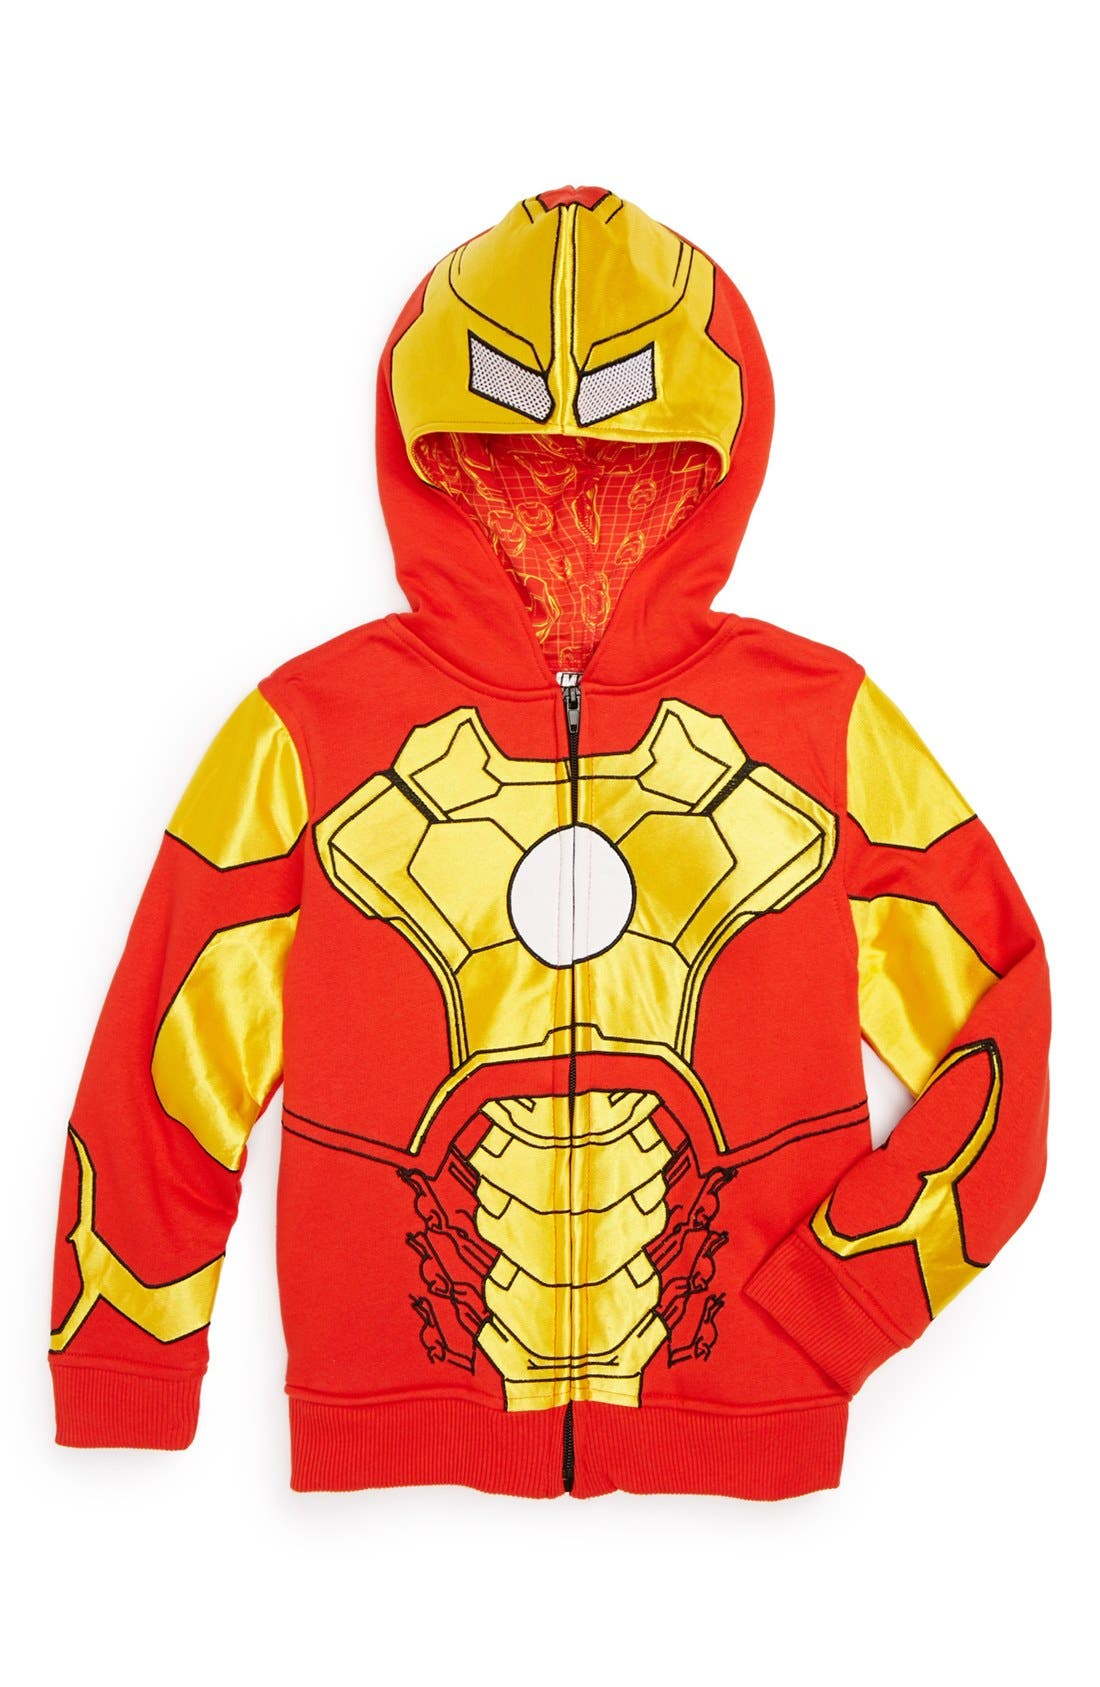 Alternate Image 1 Selected - Jem 'Iron Man' Hoodie (Little Boys)